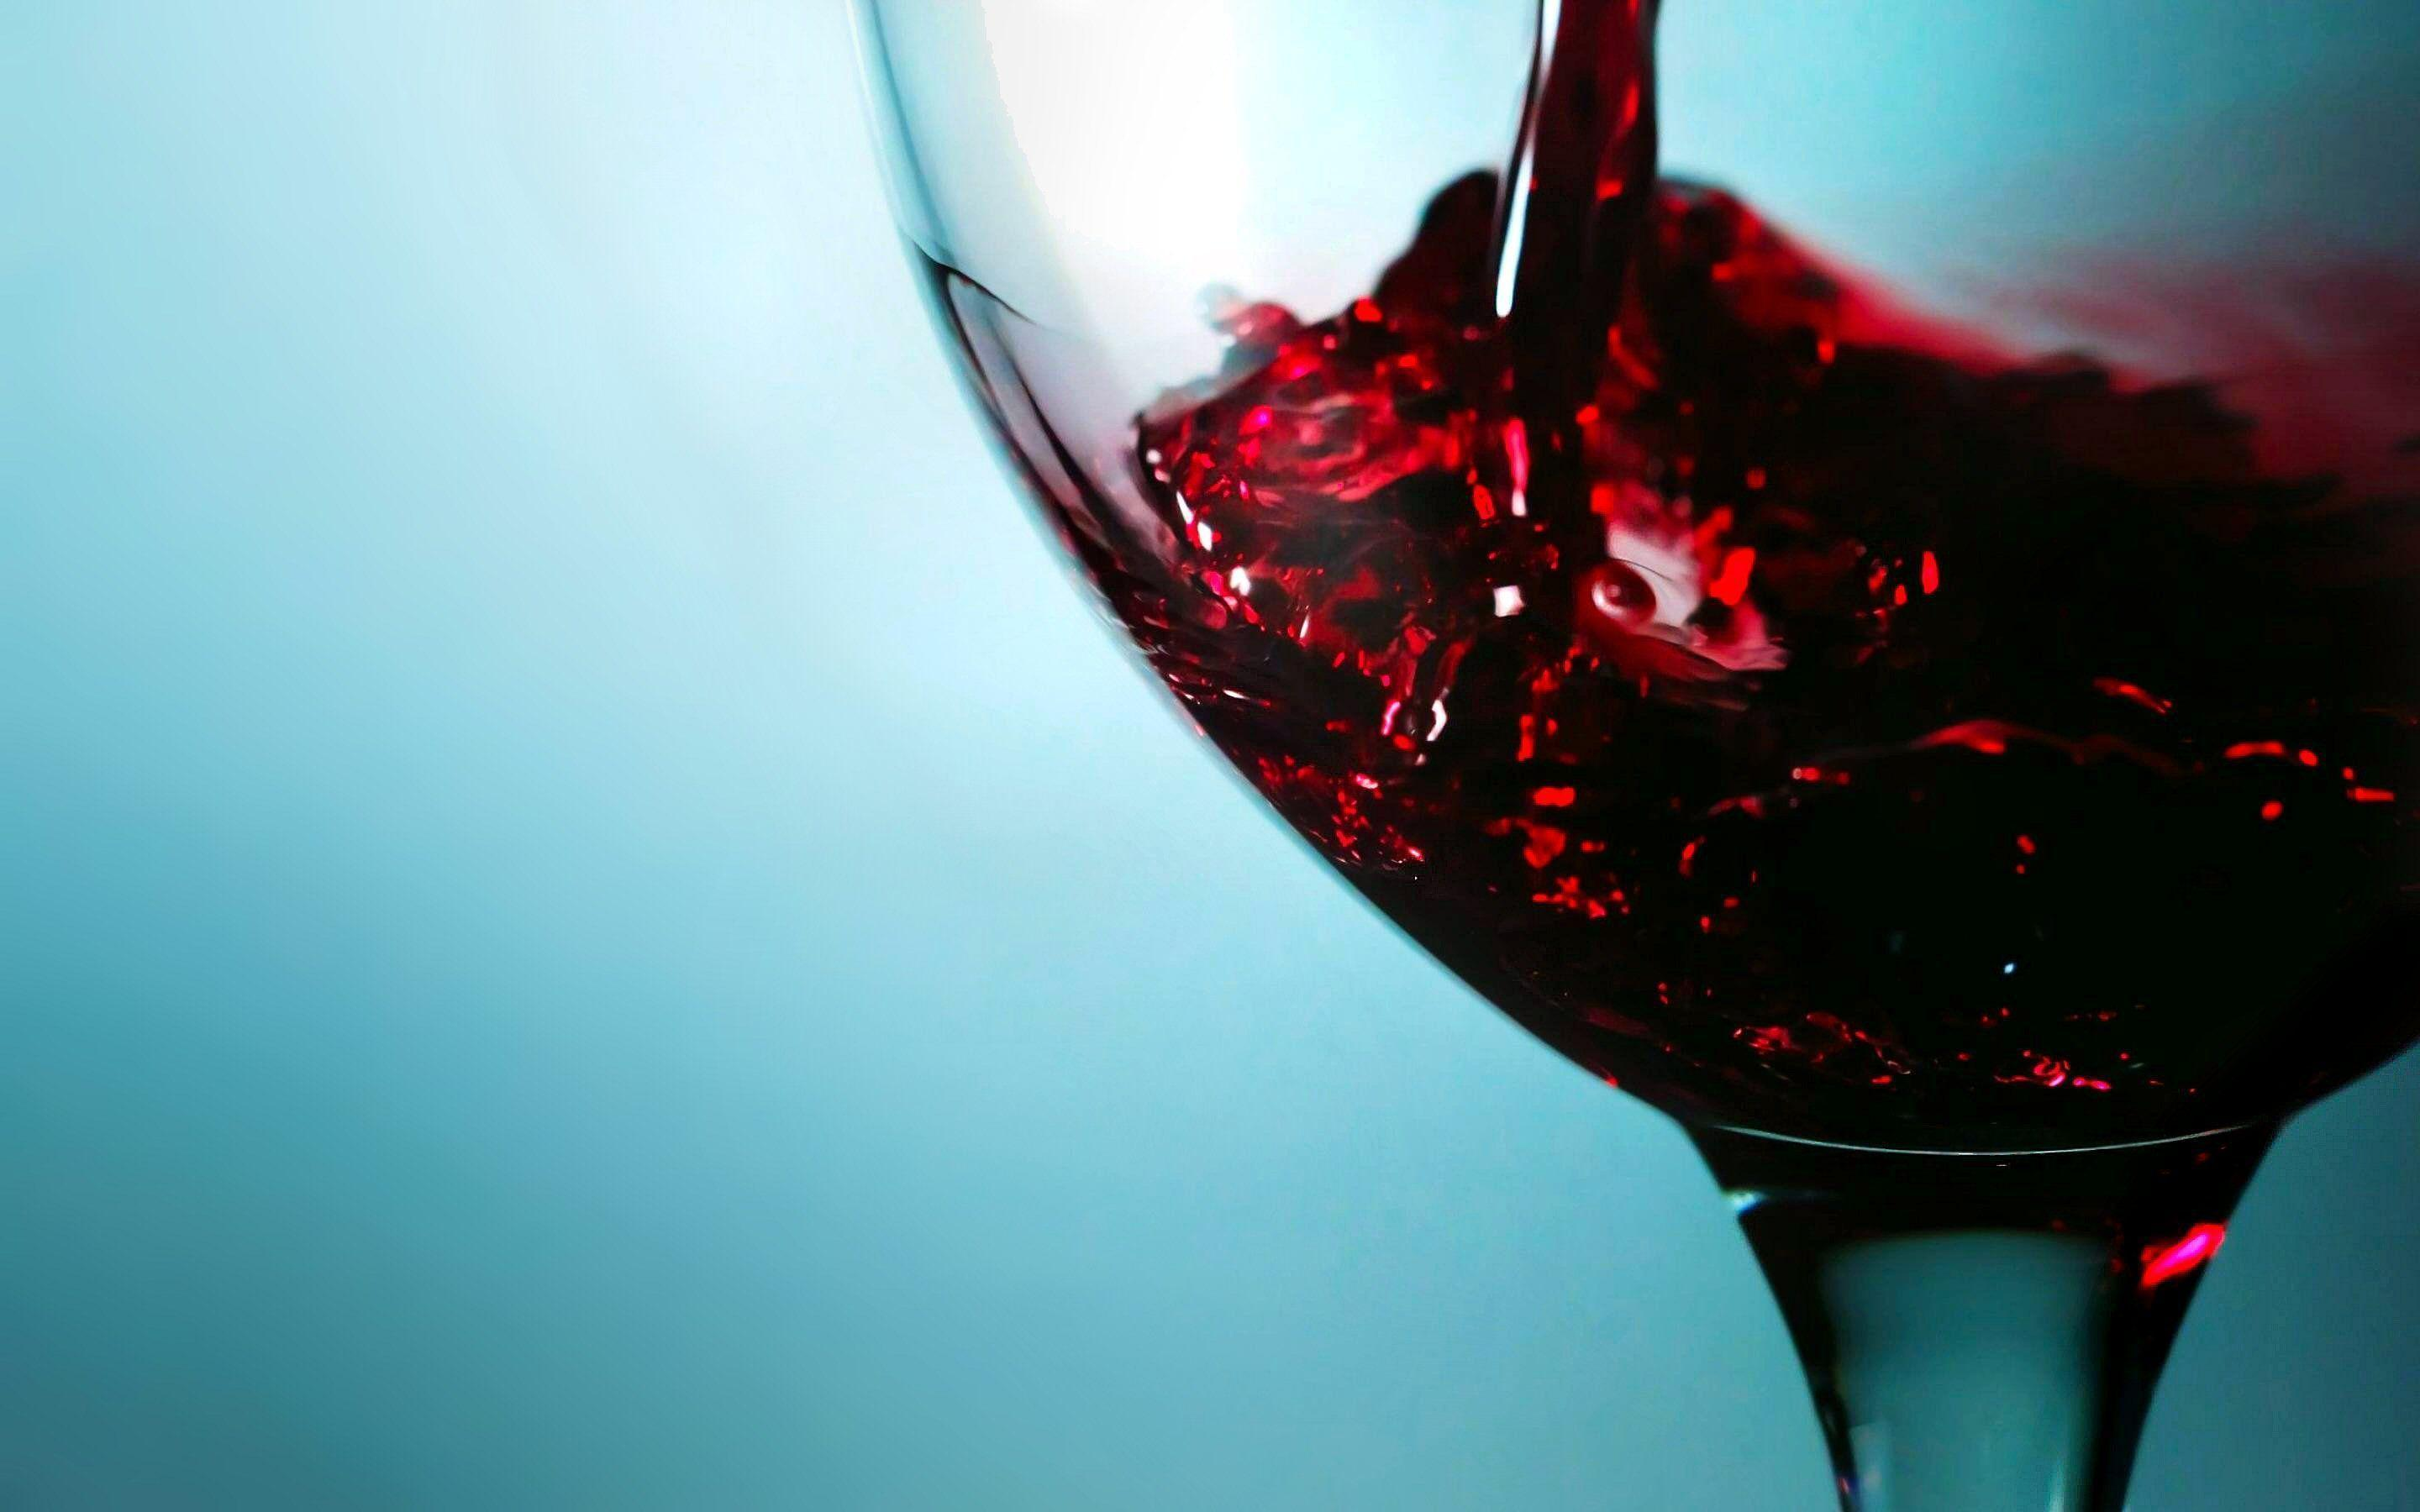 Red Wine Wallpapers   Top Red Wine Backgrounds   WallpaperAccess 2880x1800